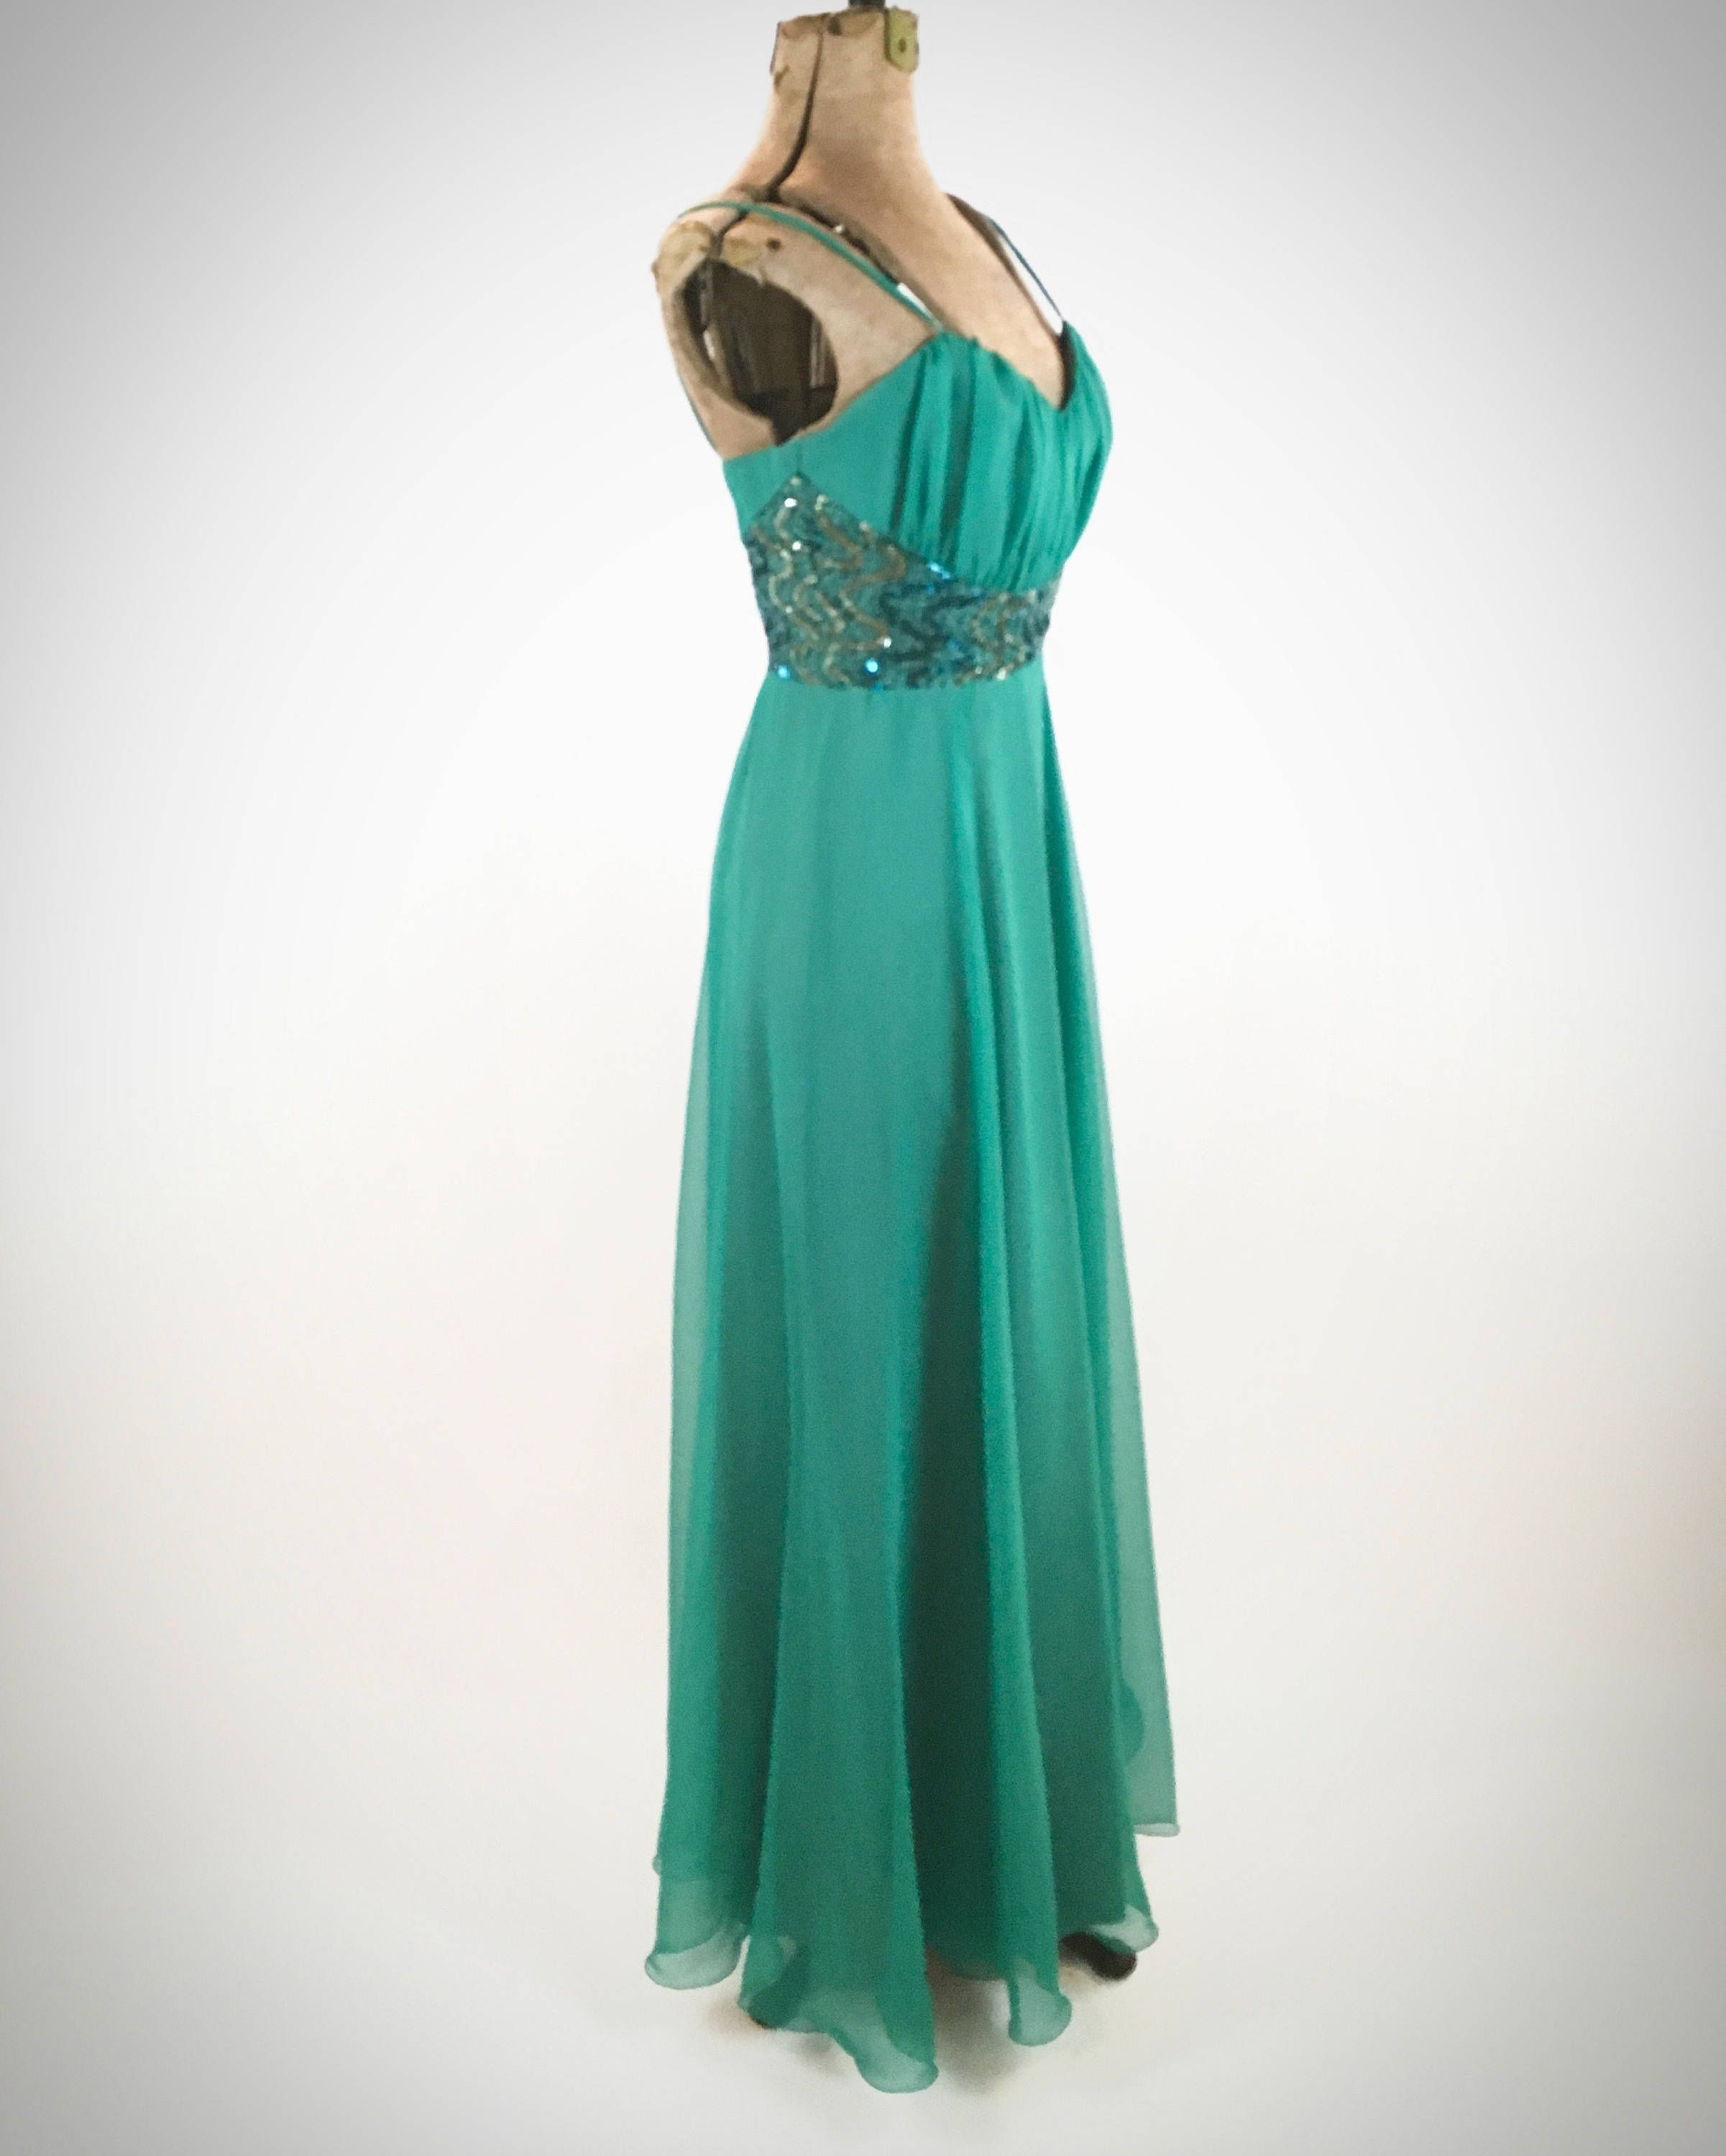 1970s Teal Gown Chiffon Sequins Spaghetti Straps Vintage 70s Formal ...